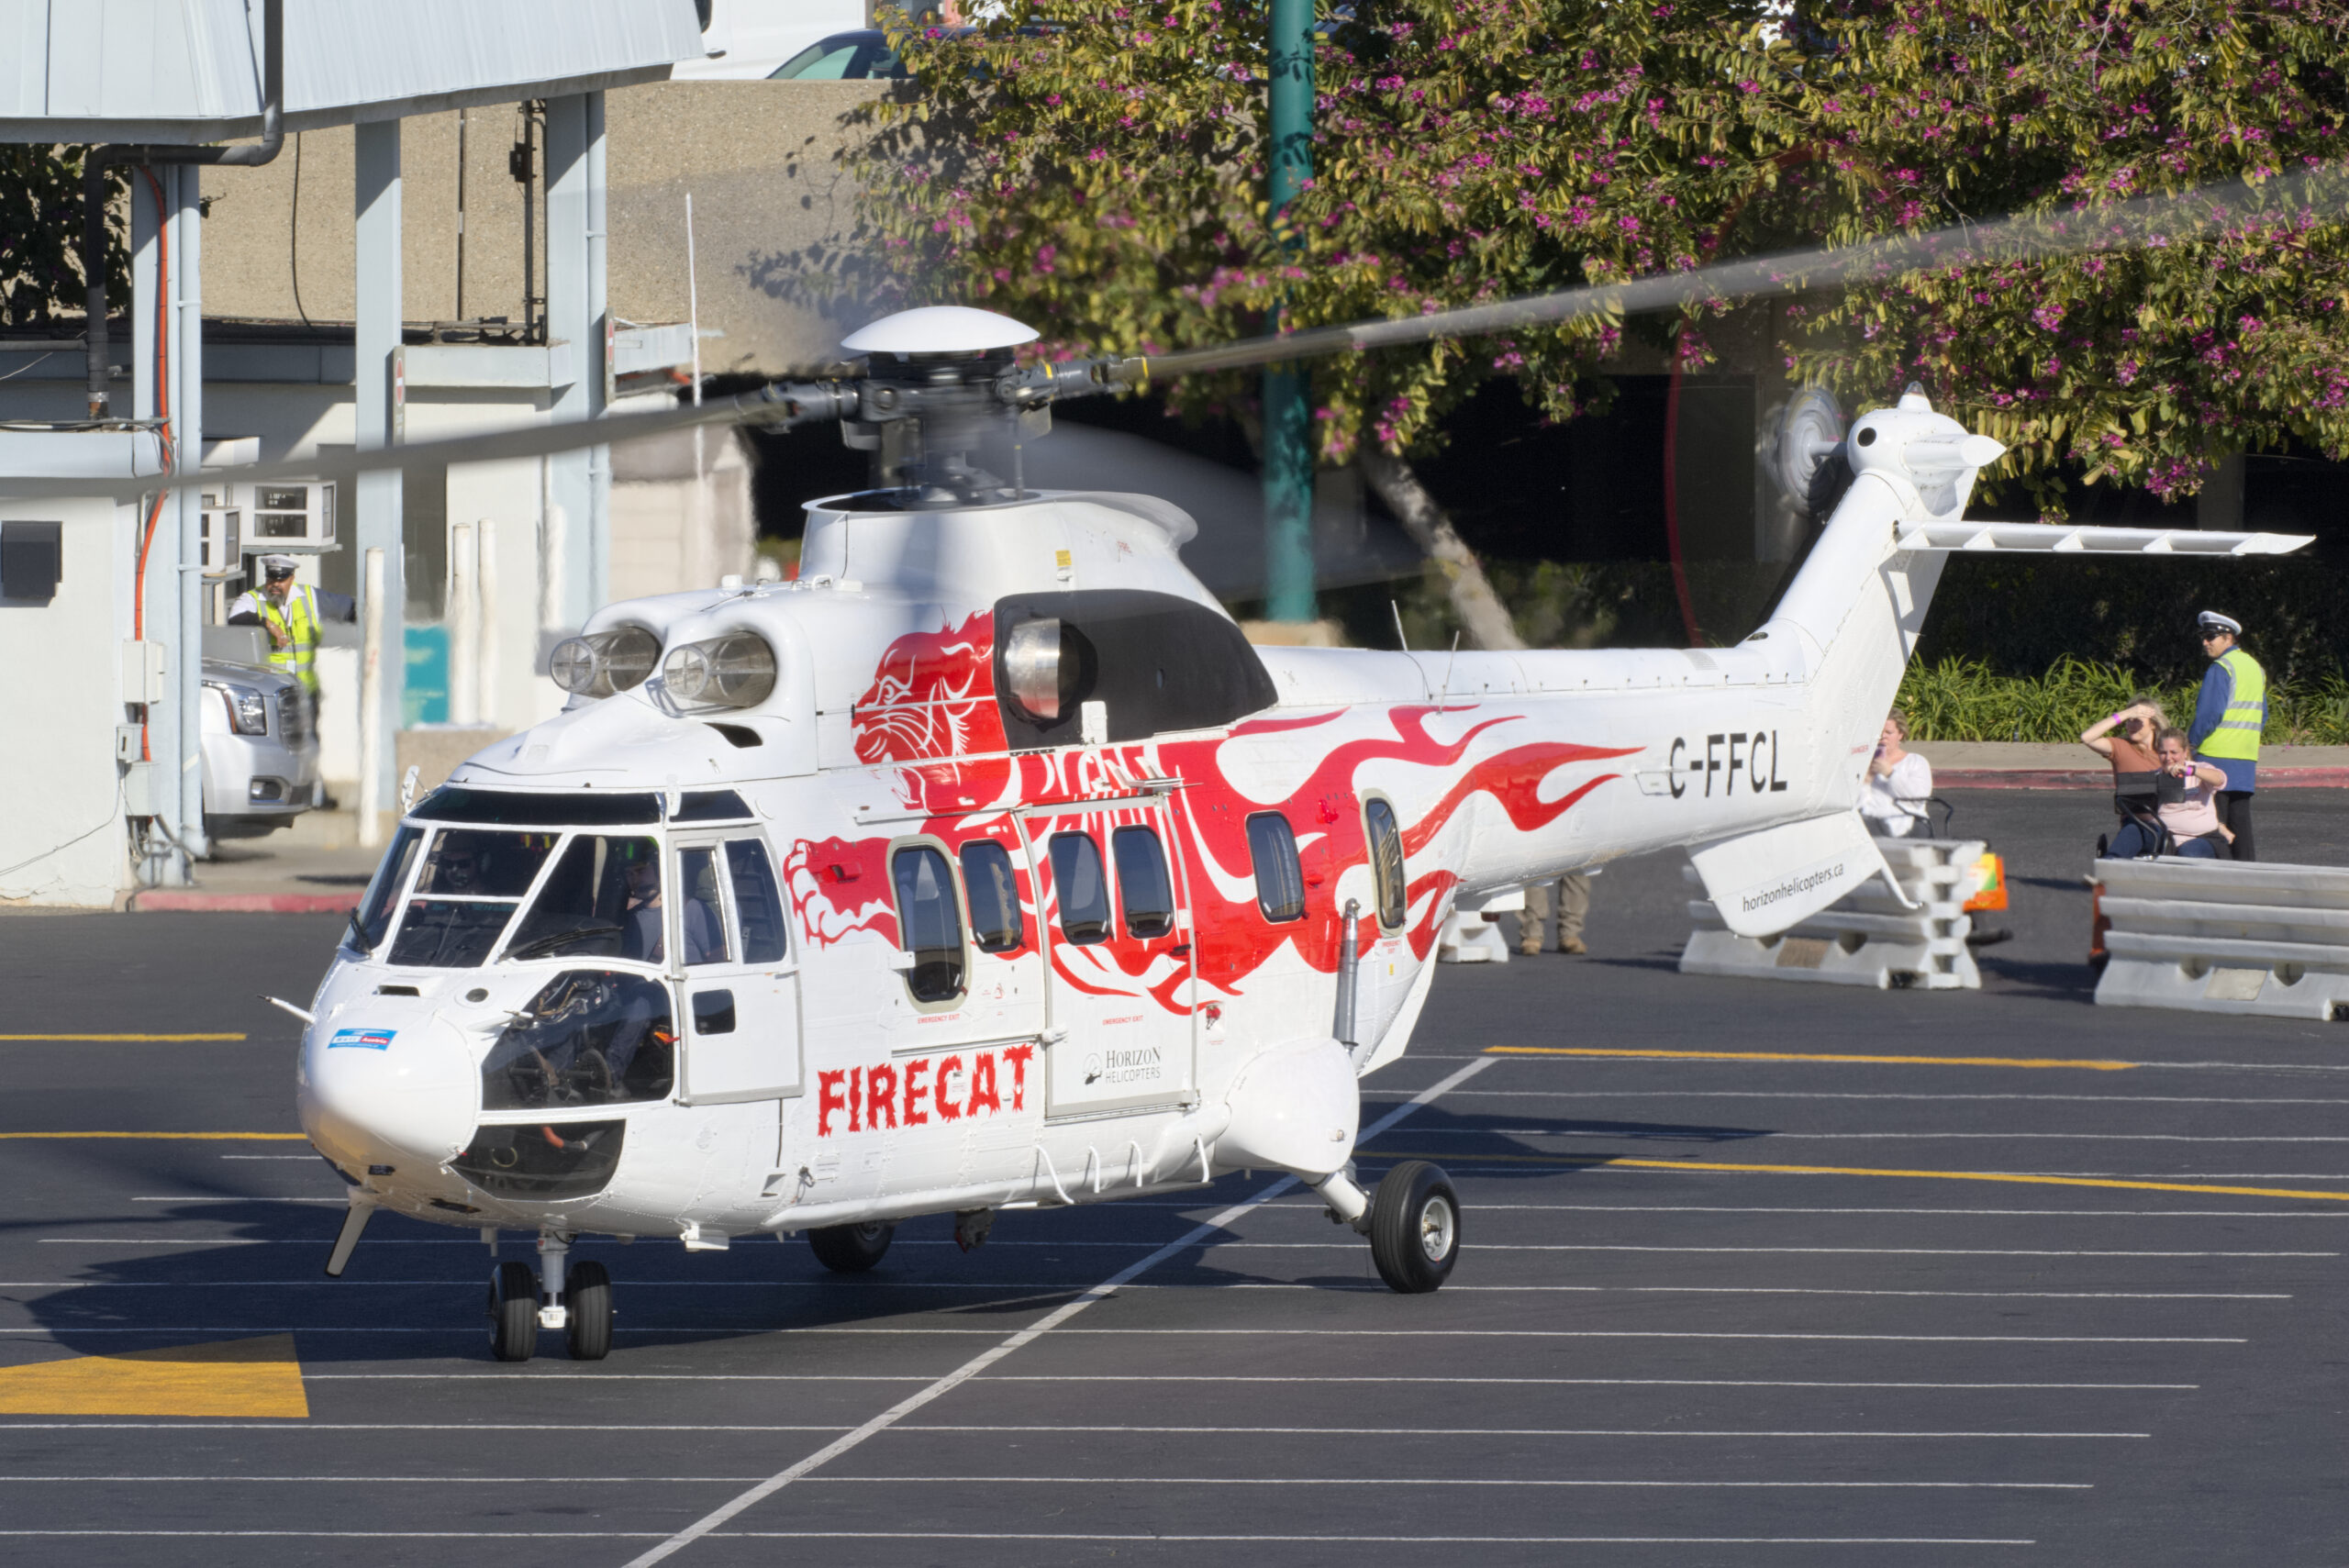 The Heli Austria EC225 Firecat featured Helitak Australia's latest aerial firefighting tank offering among several others on display from the company at Heli-Expo this year. Damon Duran photo.